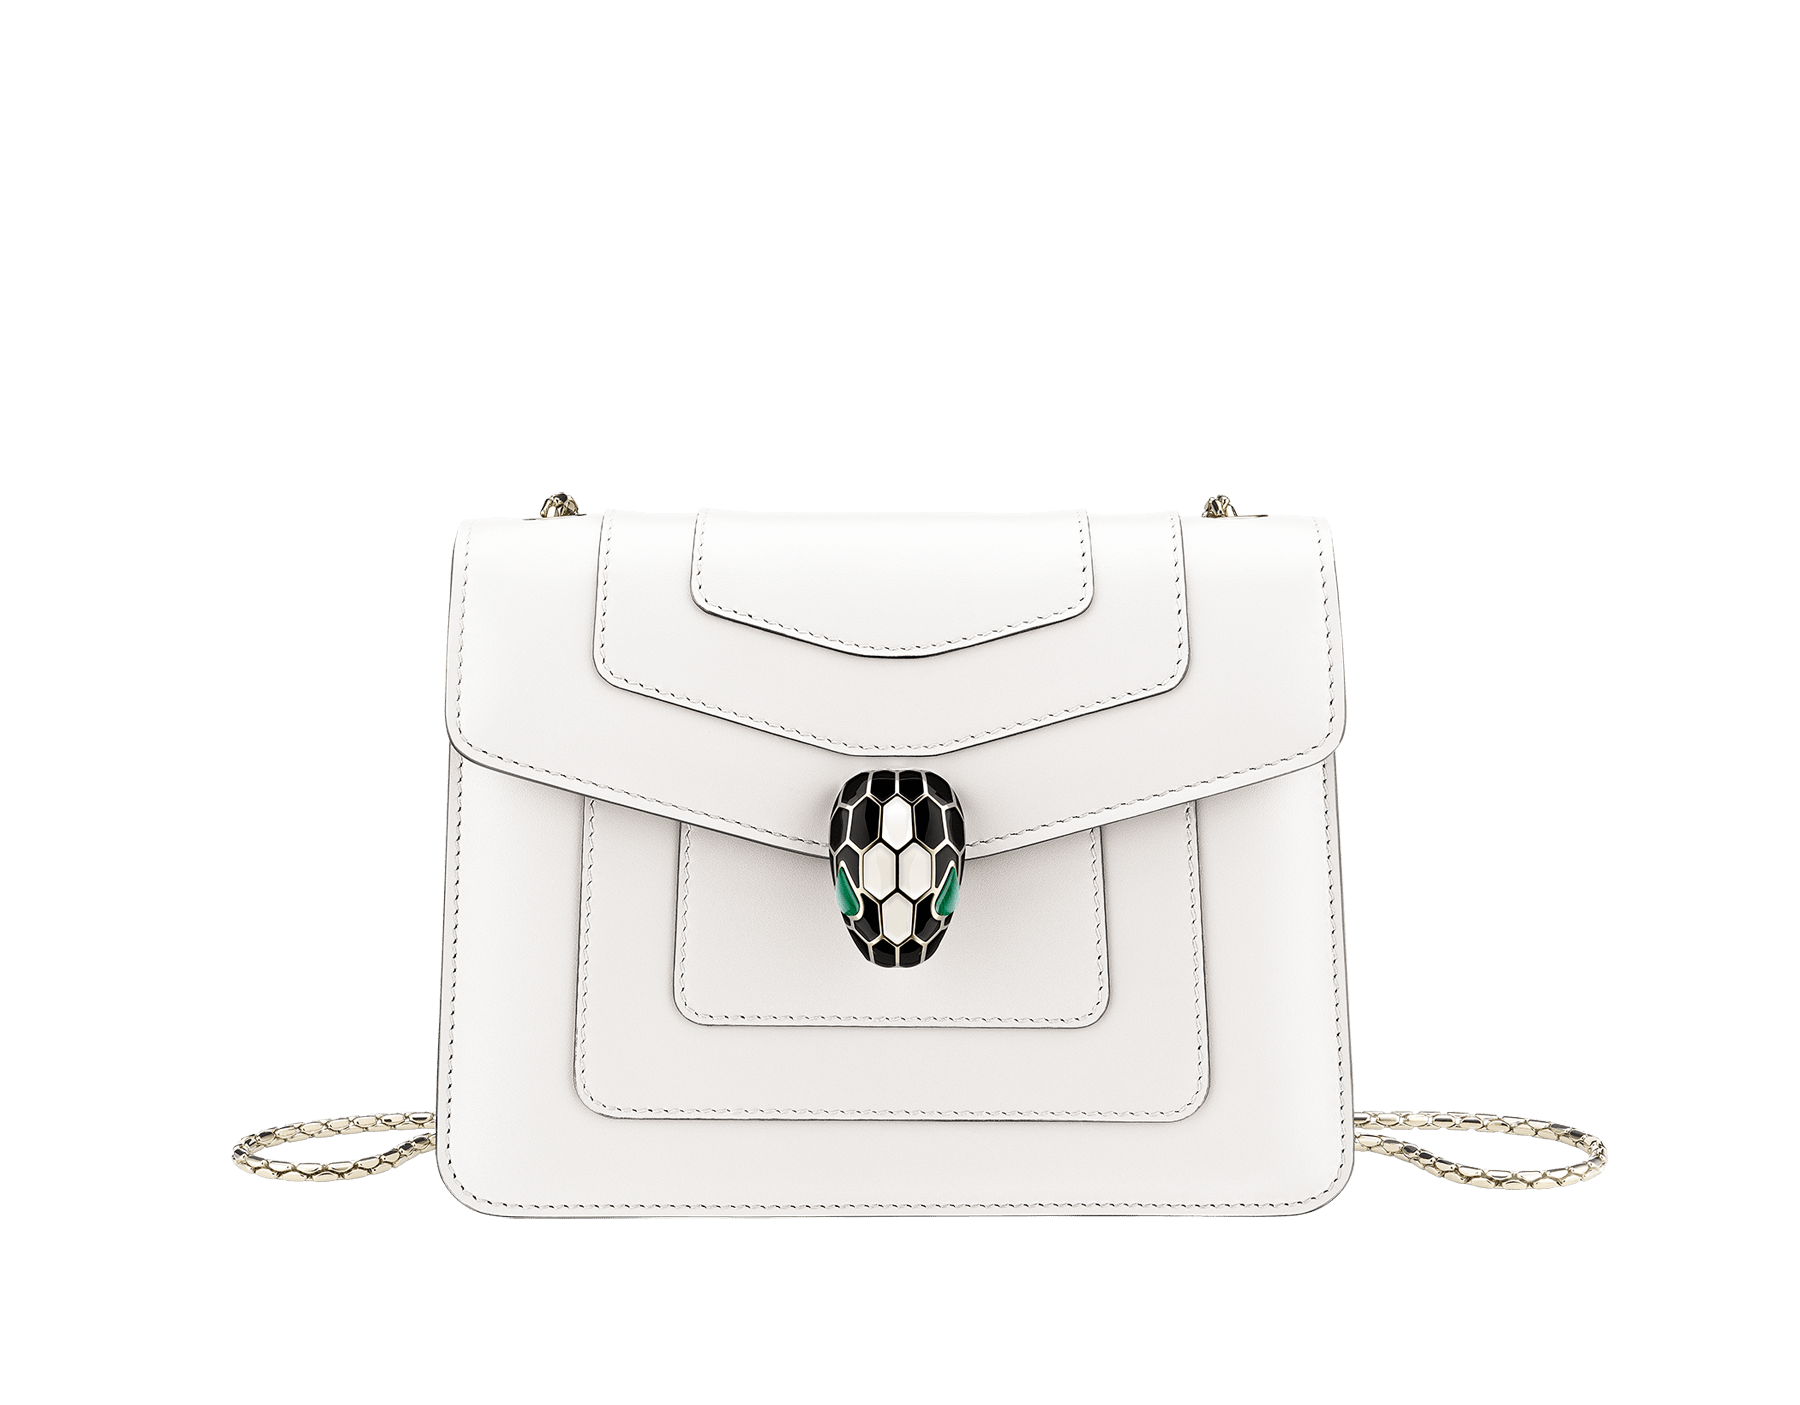 """""""Serpenti Forever"""" crossbody bag in emerald green calf leather with amethyst purple gros grain internal lining. Iconic snakehead closure in light gold plated brass enriched with black and white agate enamel, and green malachite eyes. 422-CLa image 1"""